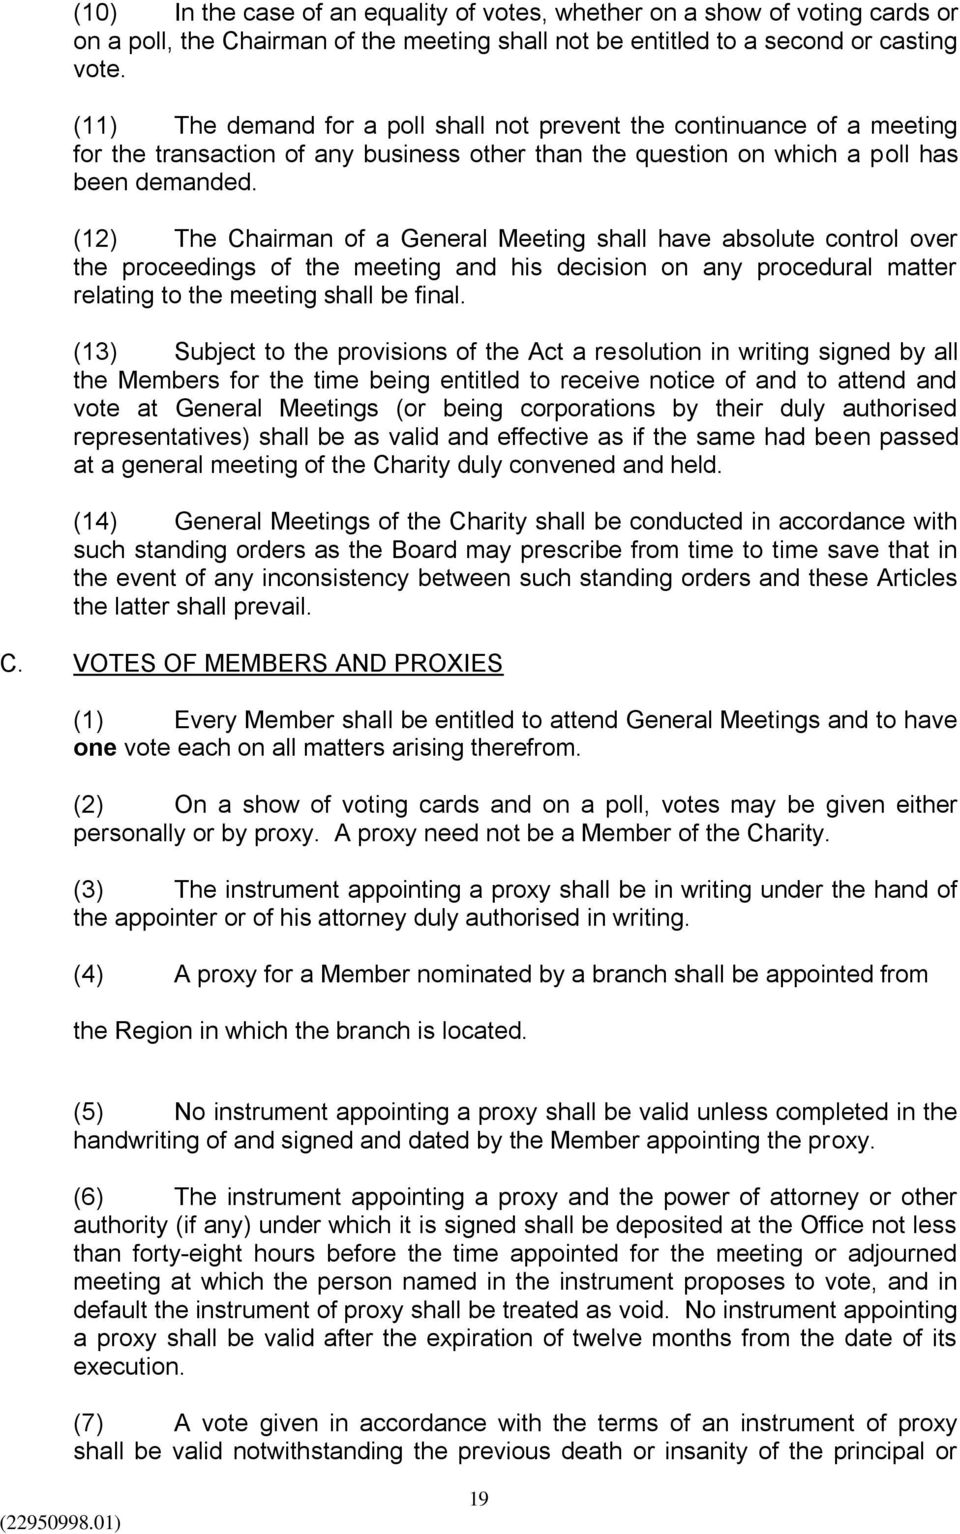 (12) The Chairman of a General Meeting shall have absolute control over the proceedings of the meeting and his decision on any procedural matter relating to the meeting shall be final.